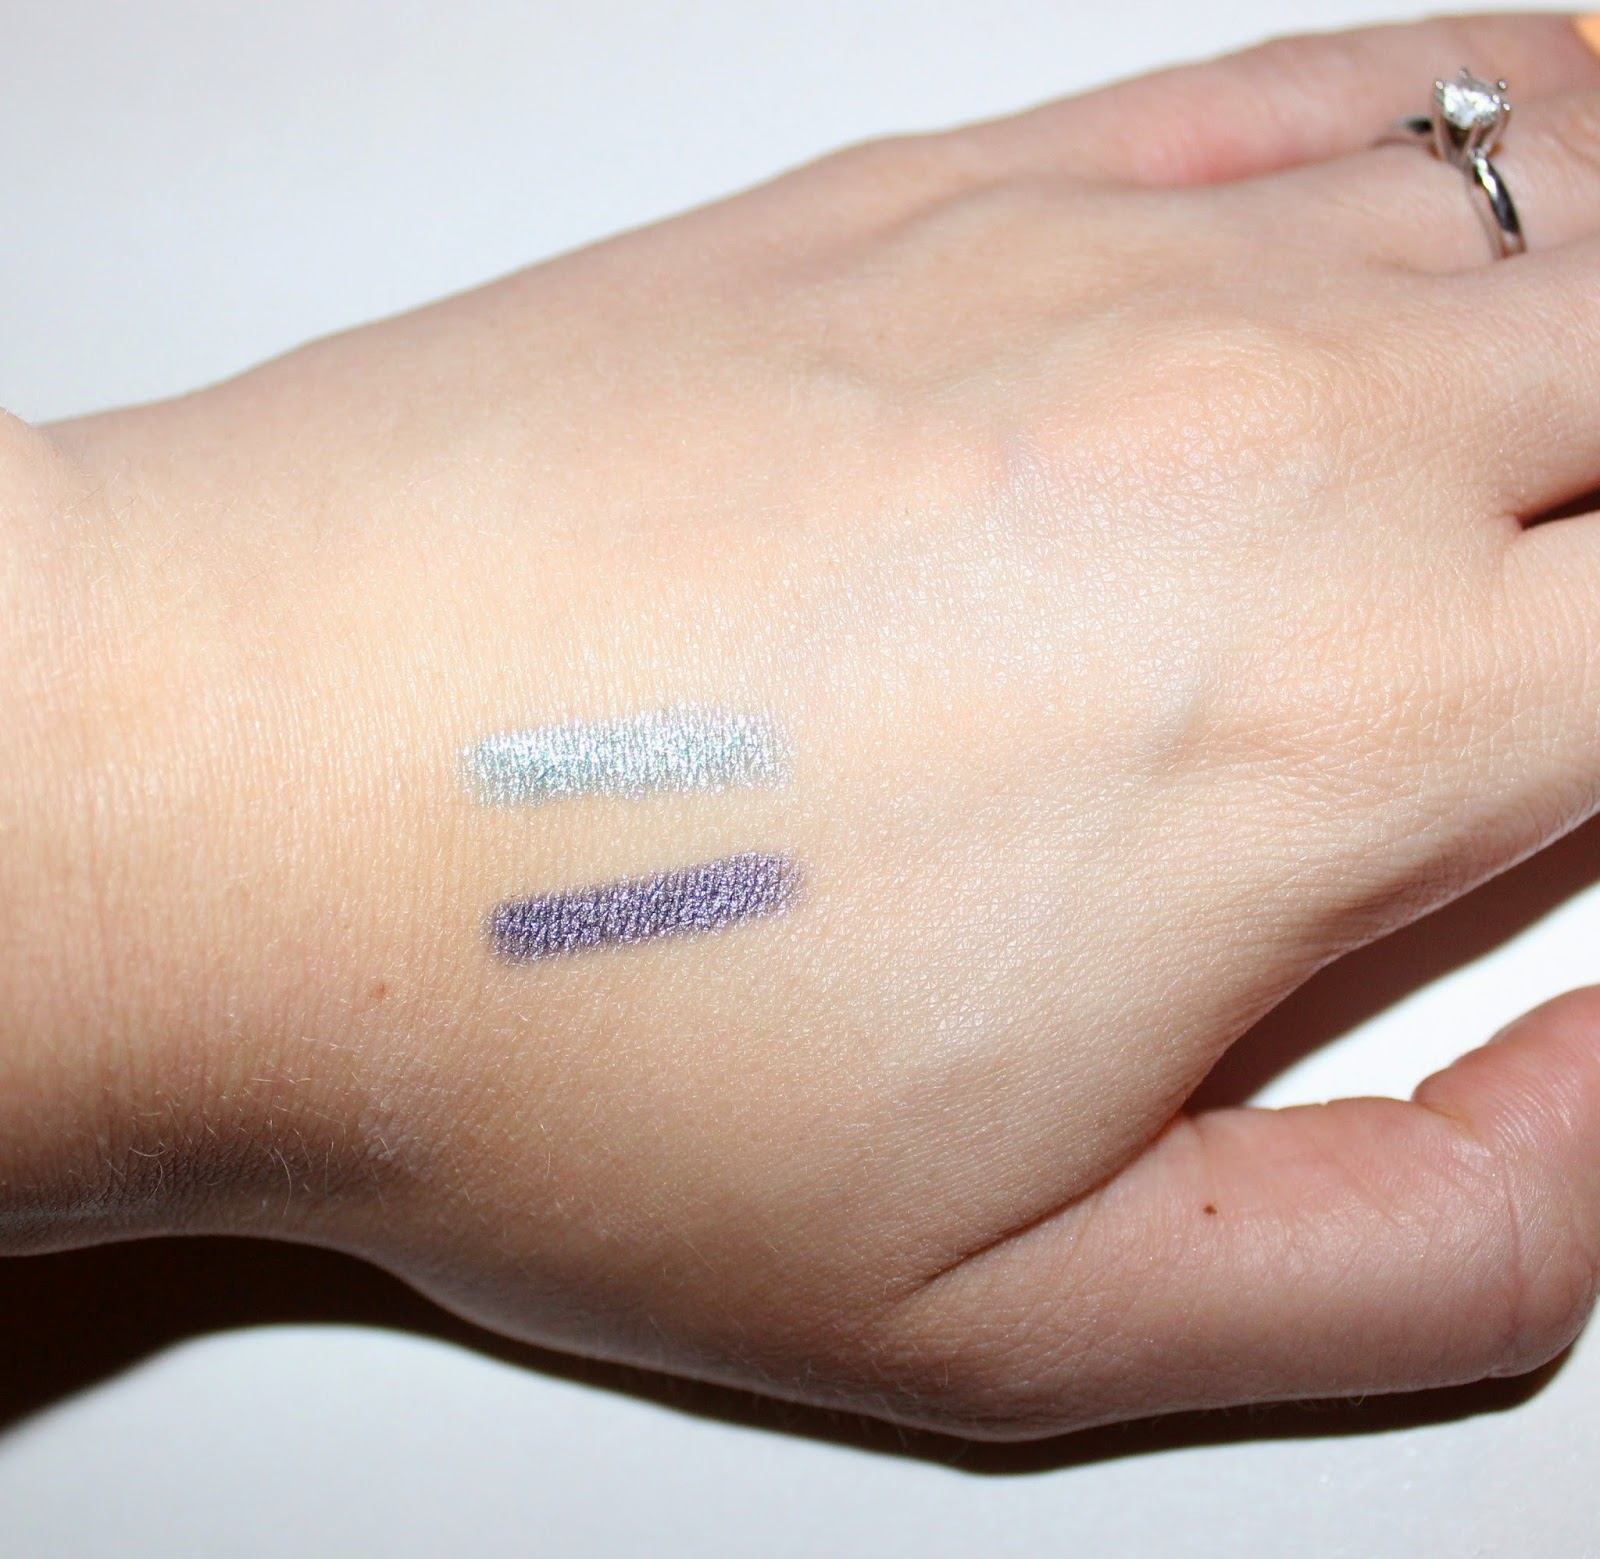 ARTDECO Long-Lasting Eyeshadow Stick Swatches